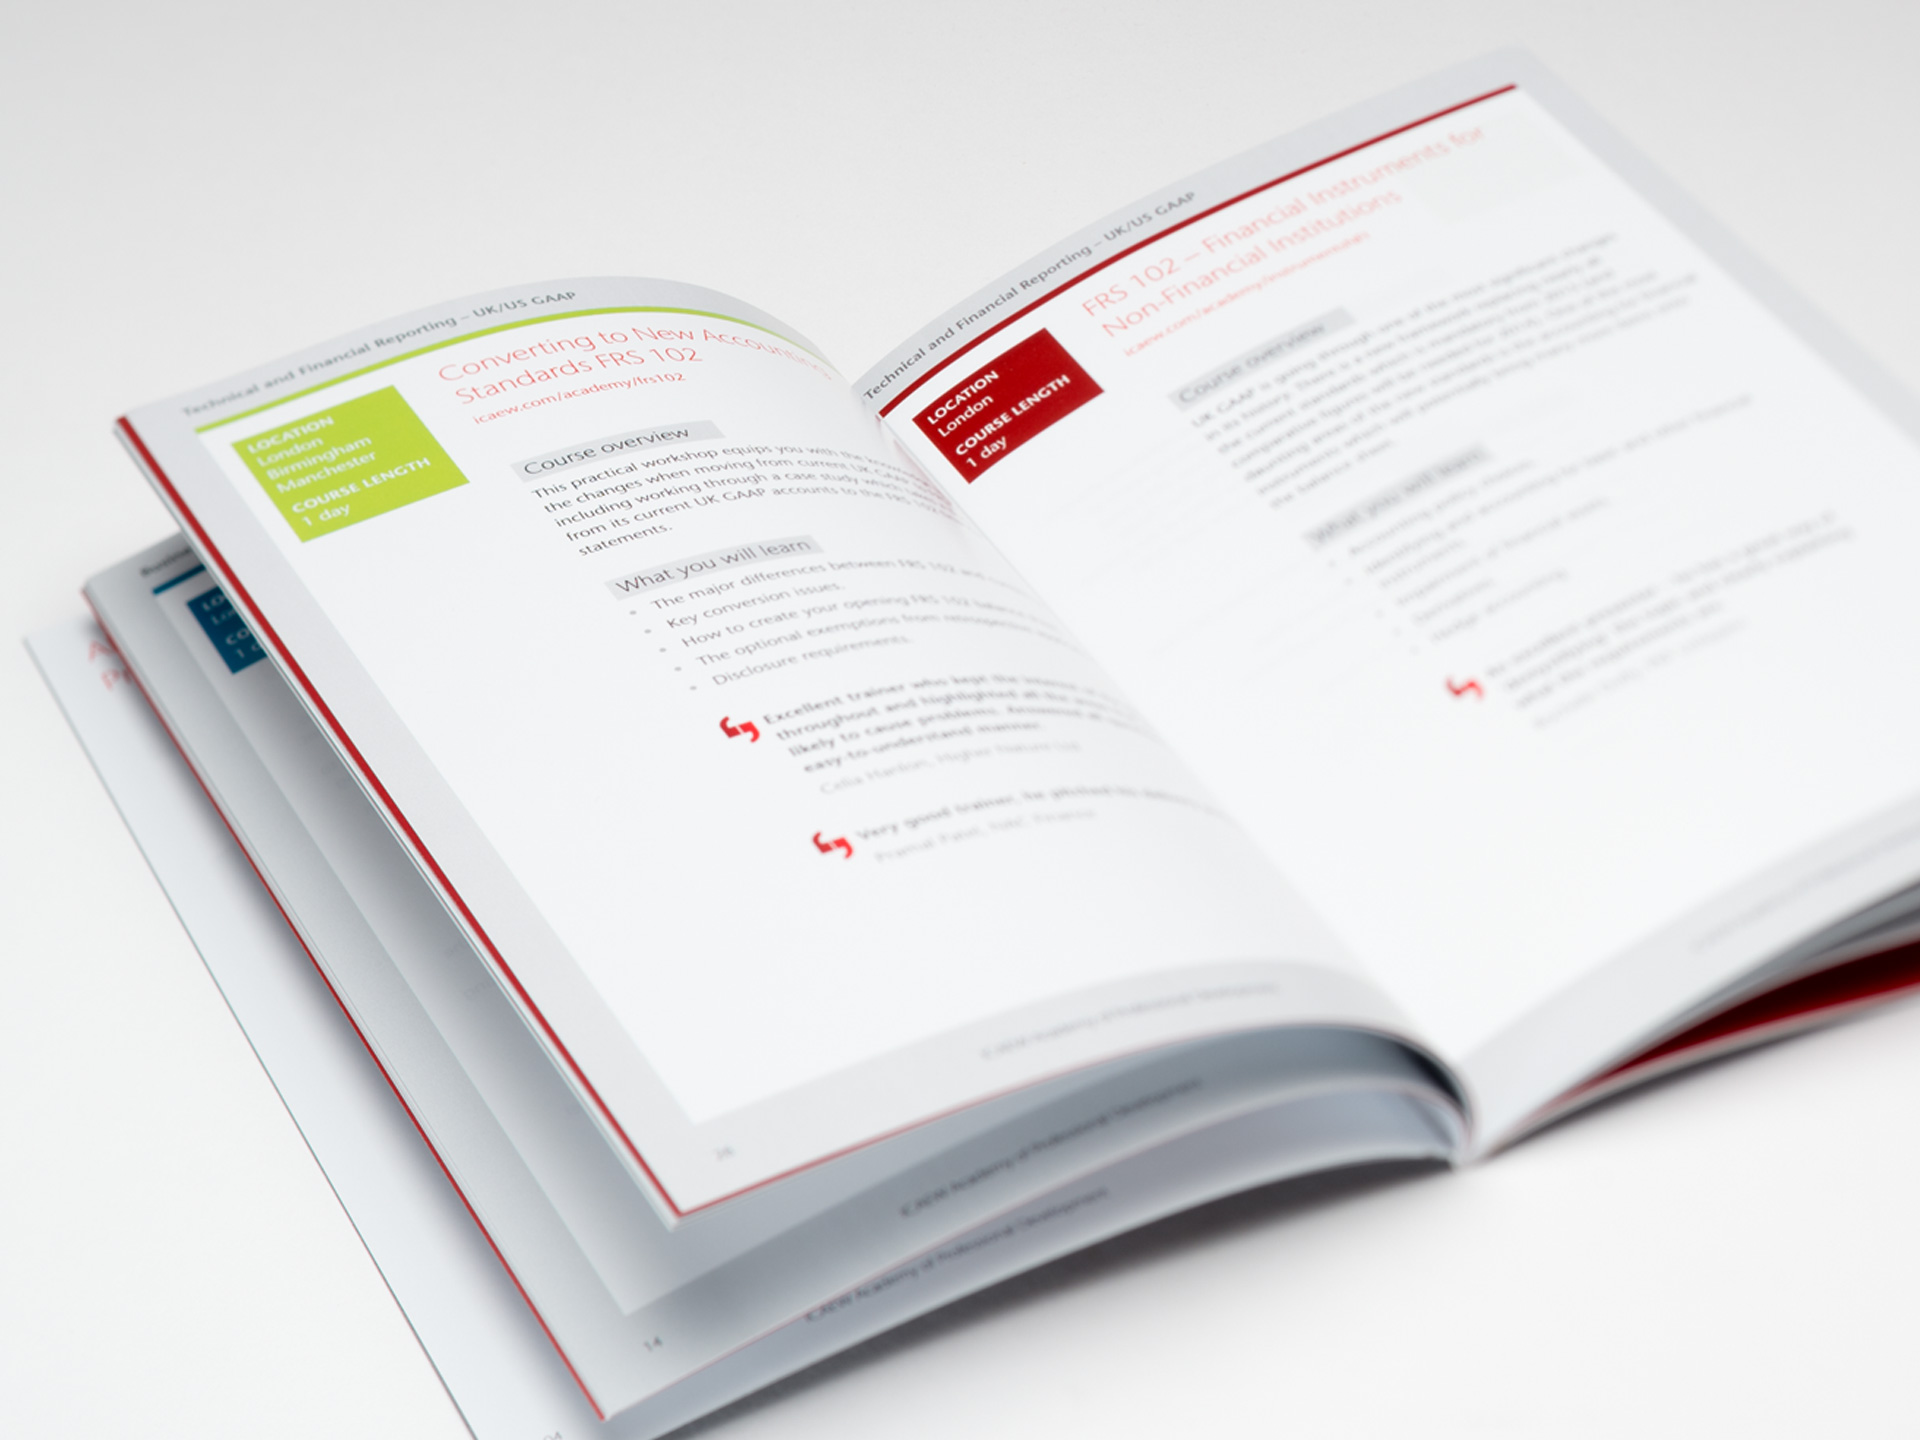 ICAEW Brochures and <br>Graphic Design